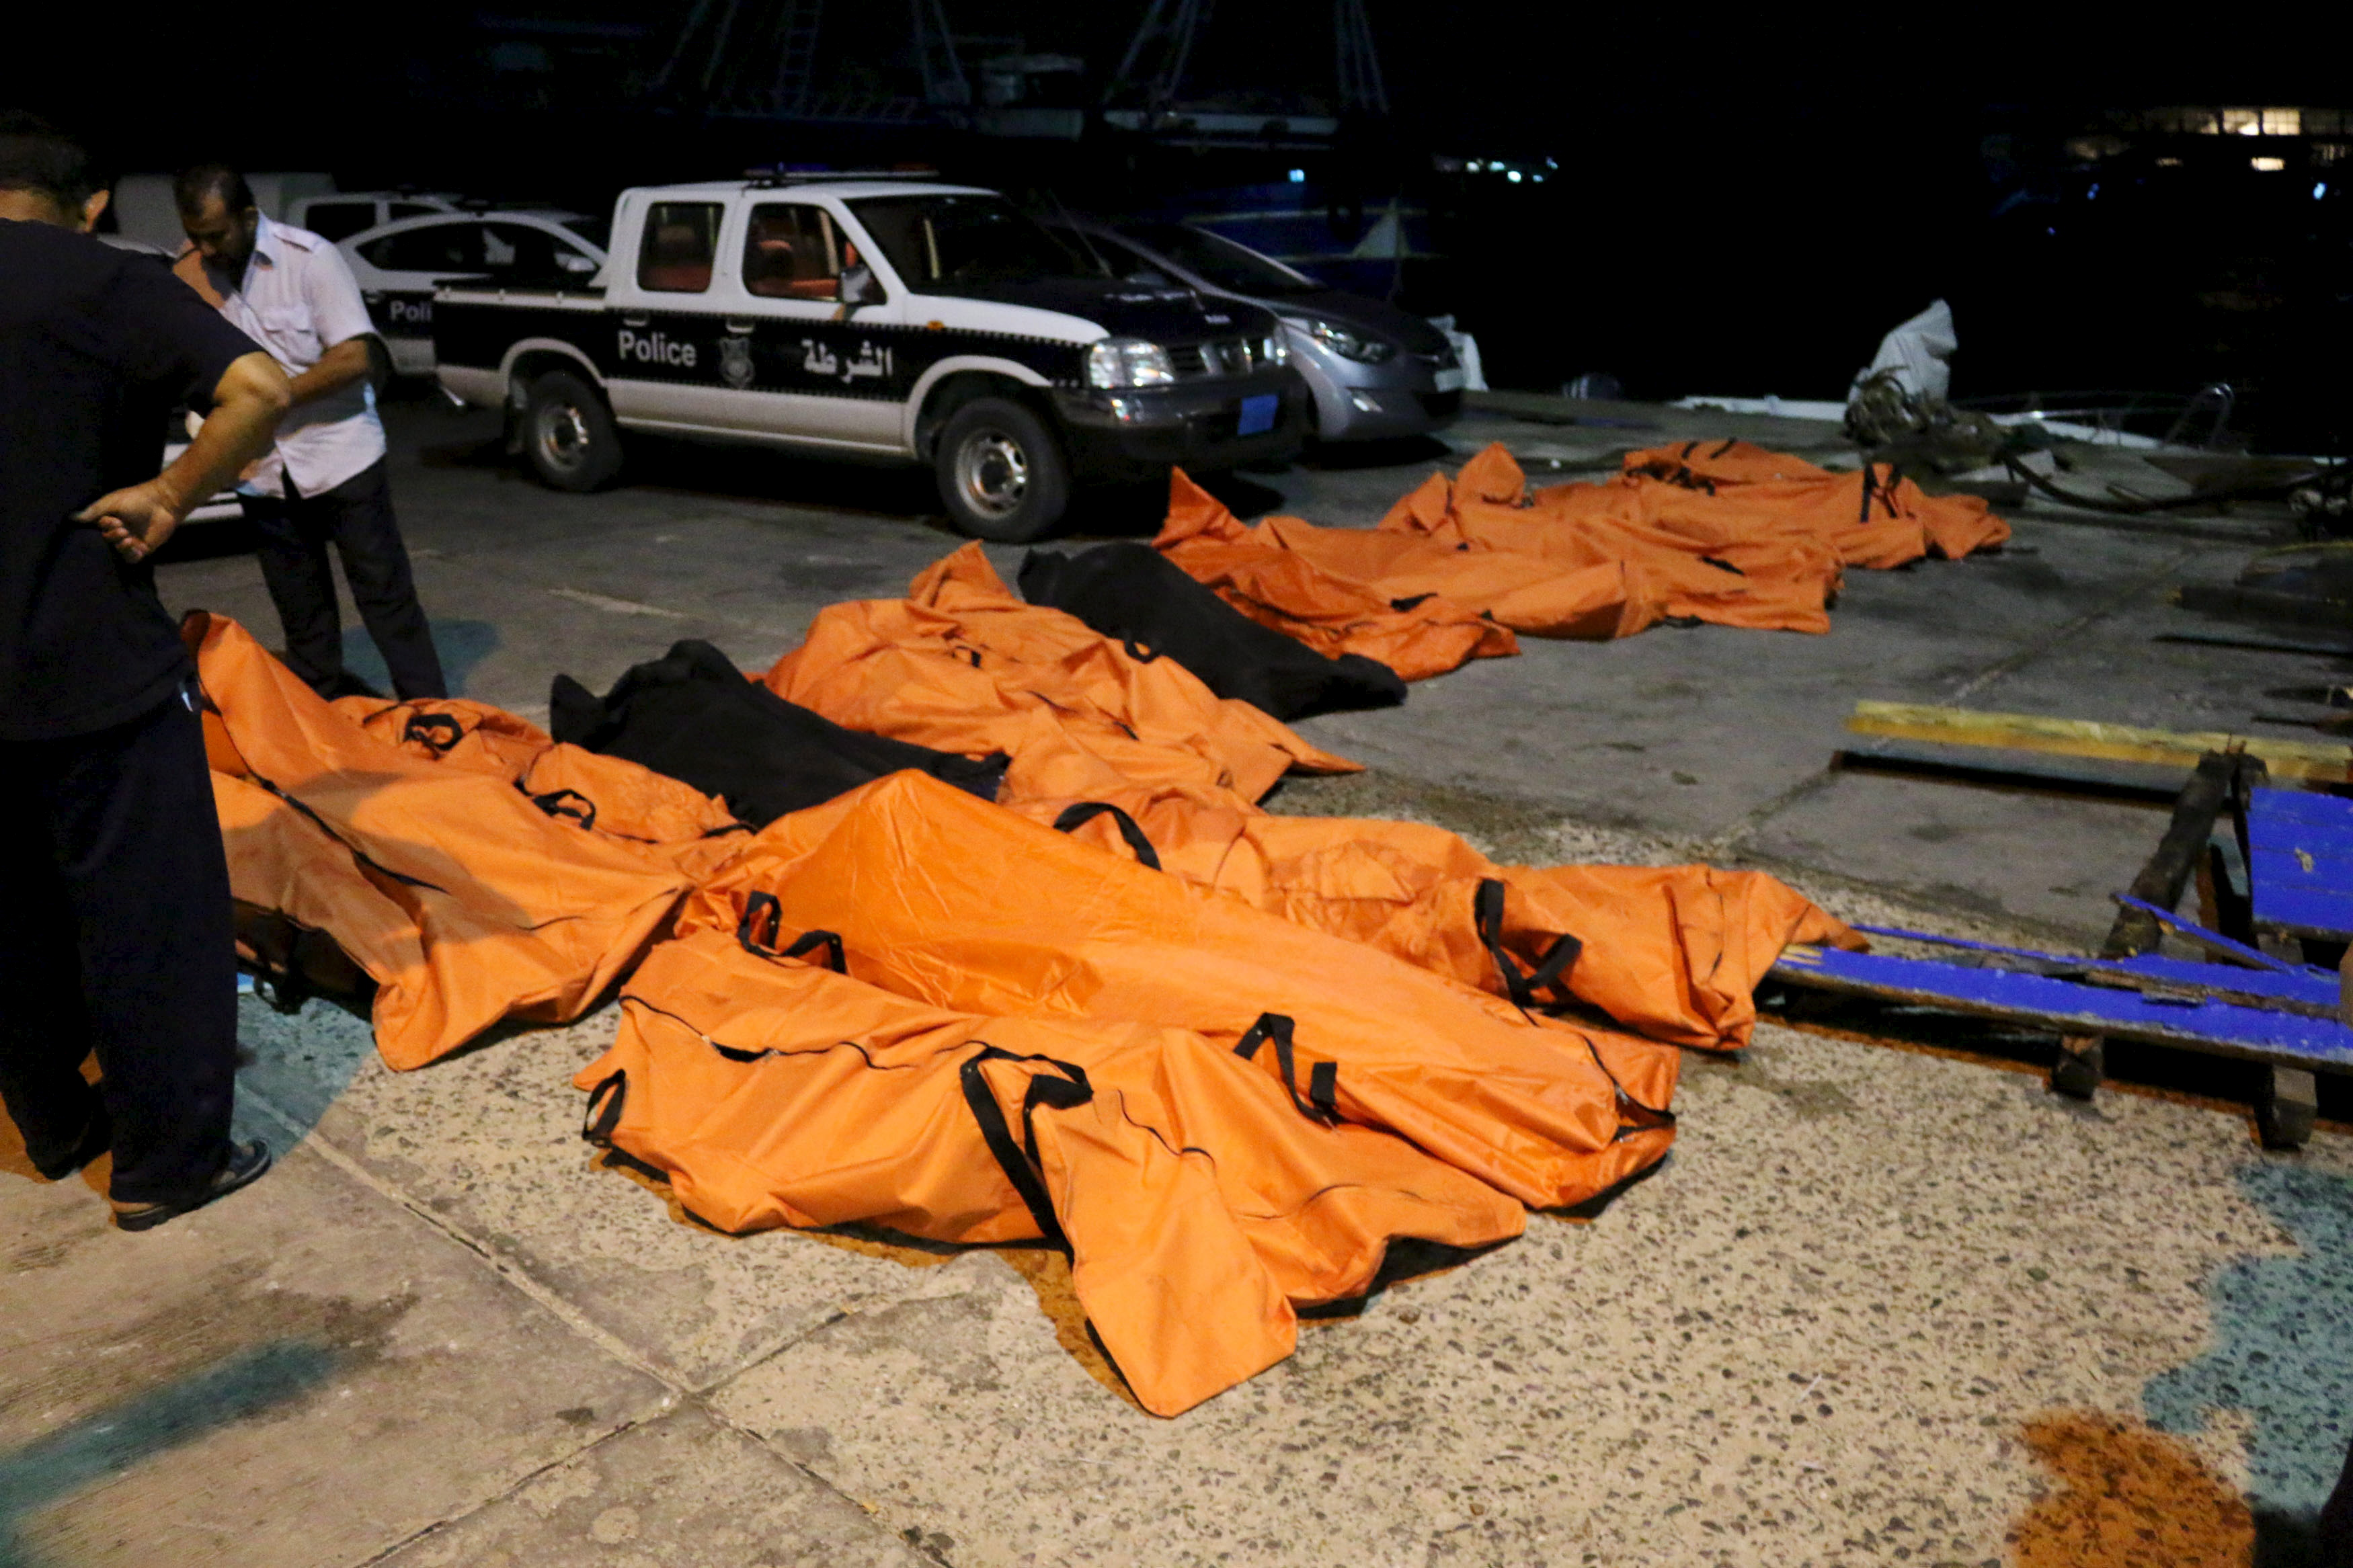 A view of the bodies of dead migrants that were recovered by the Libyan coast guard after a boat sank off the coastal Libyan town of Zuwara, west of Tripoli, on Aug. 27, 2015